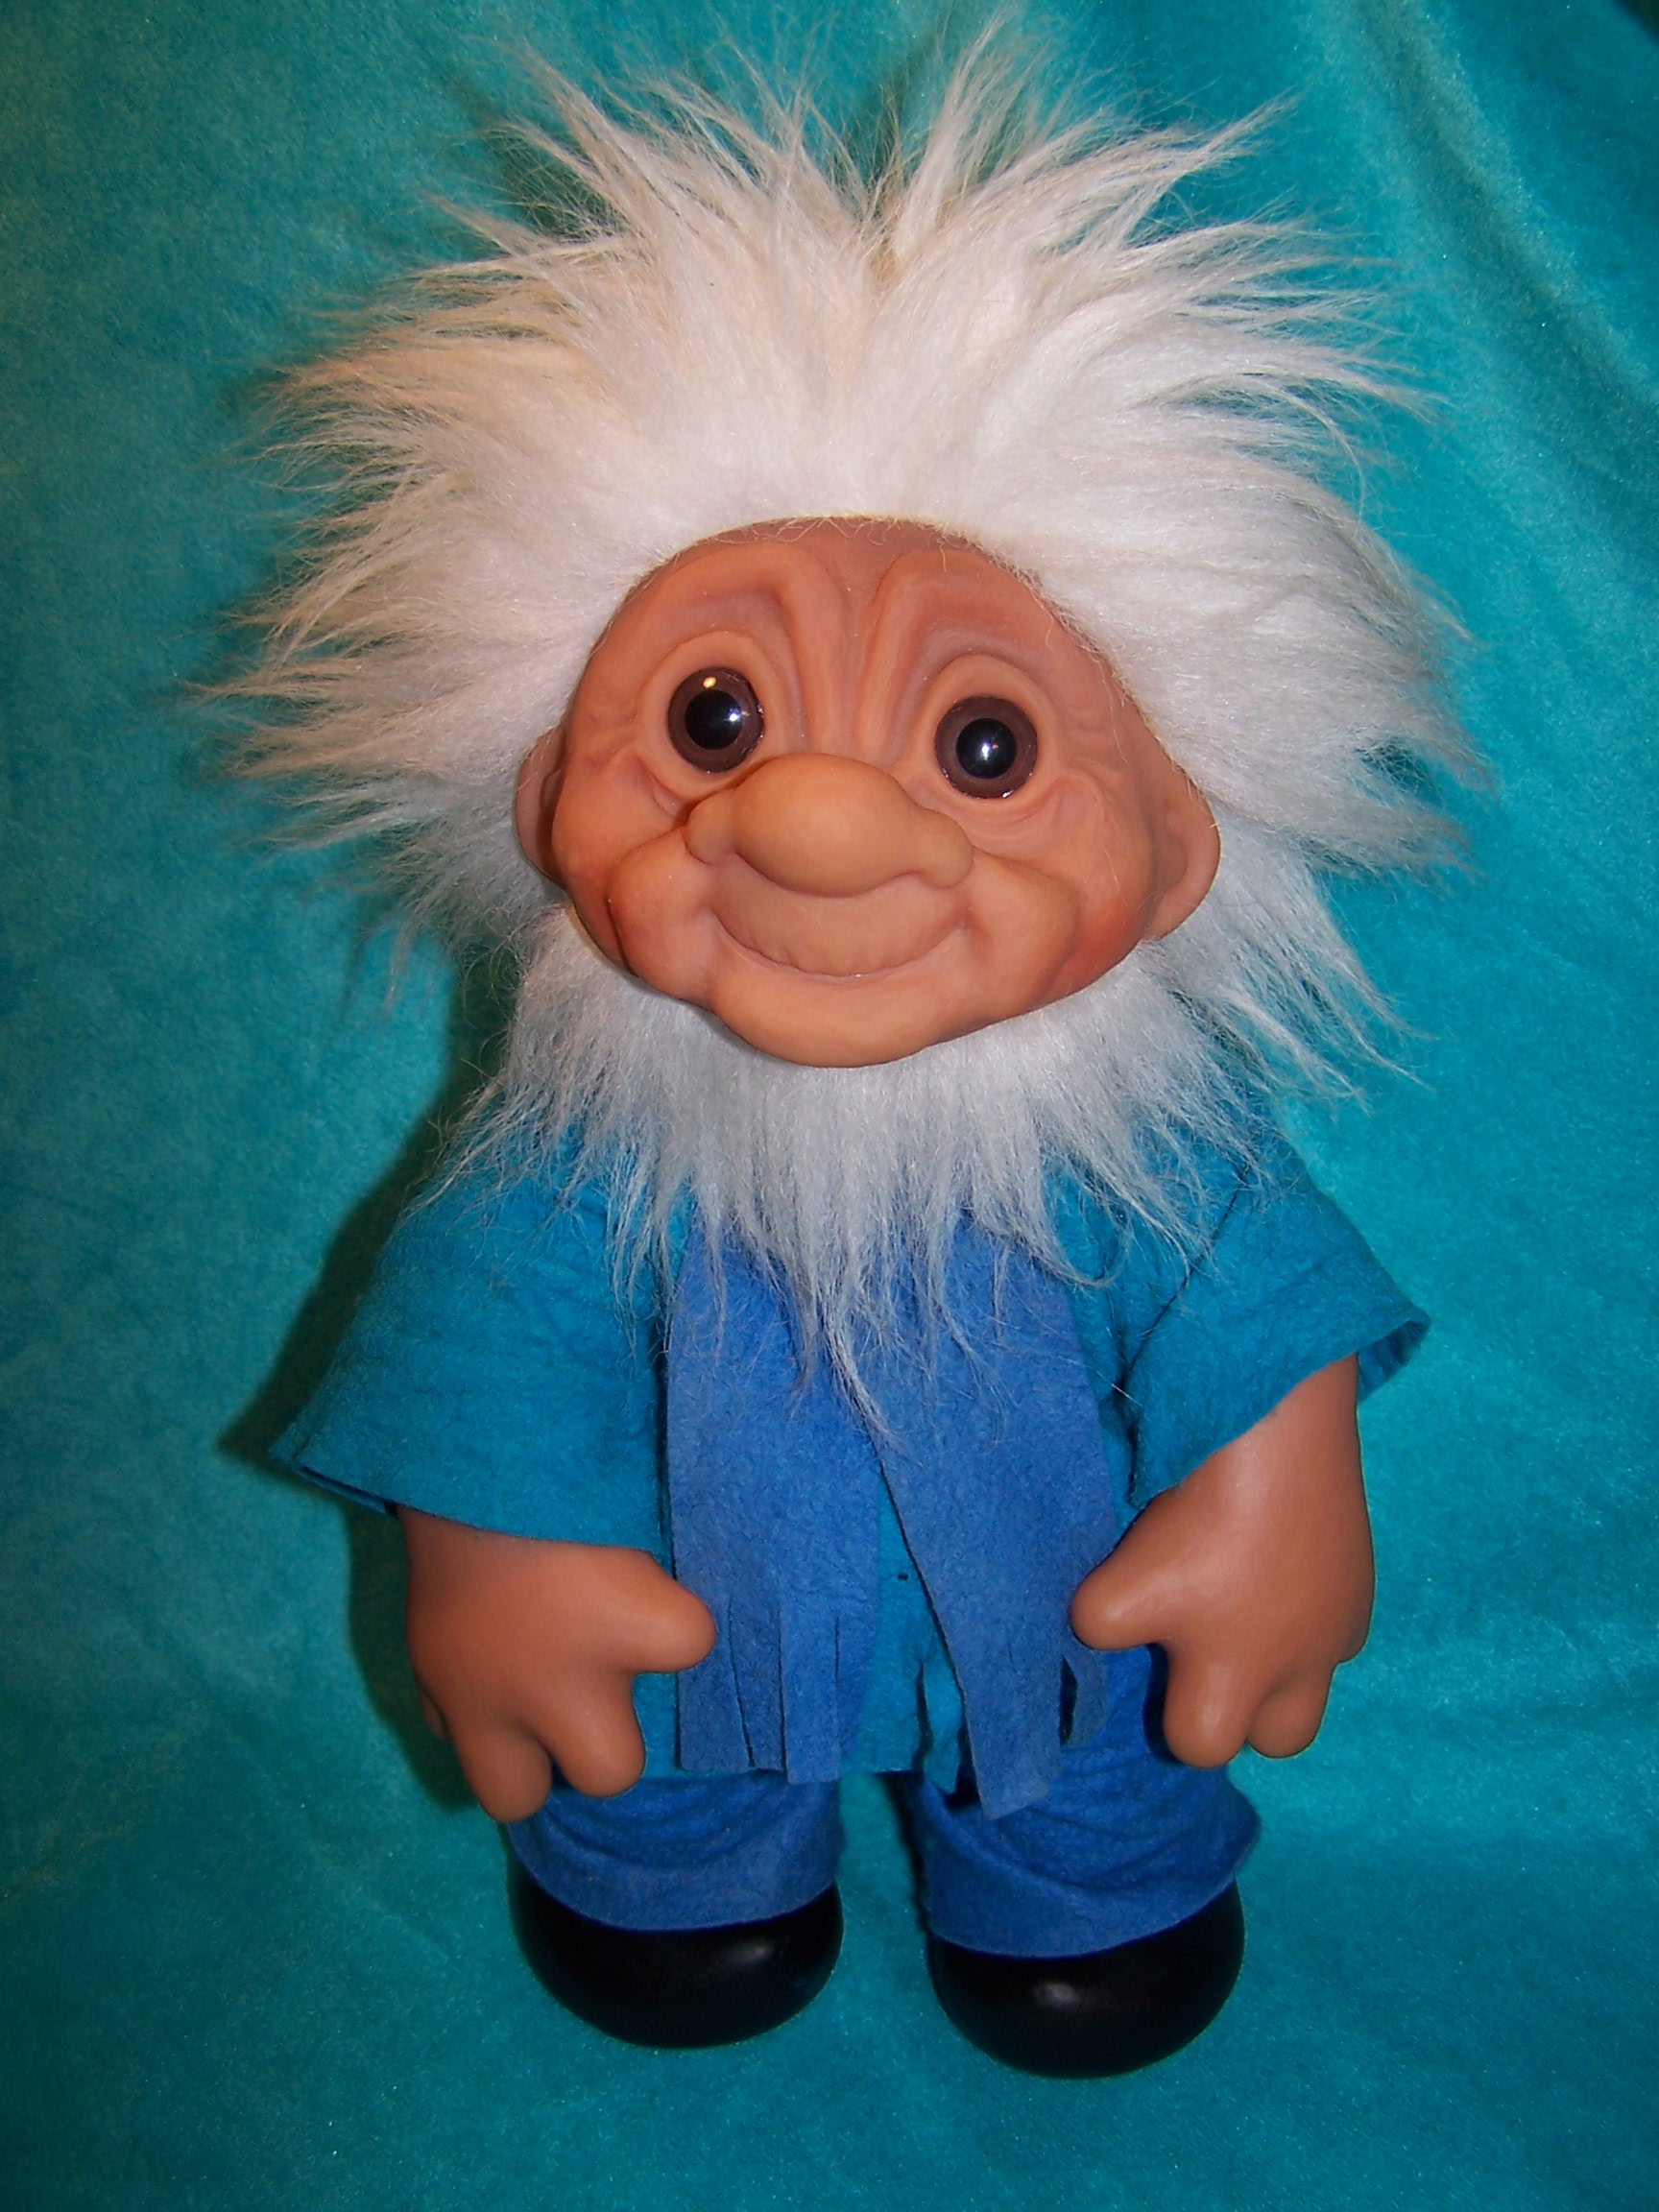 wooden play kitchen splash guard sink norfin troll doll grandpa, thomas dam, 1977 denmark